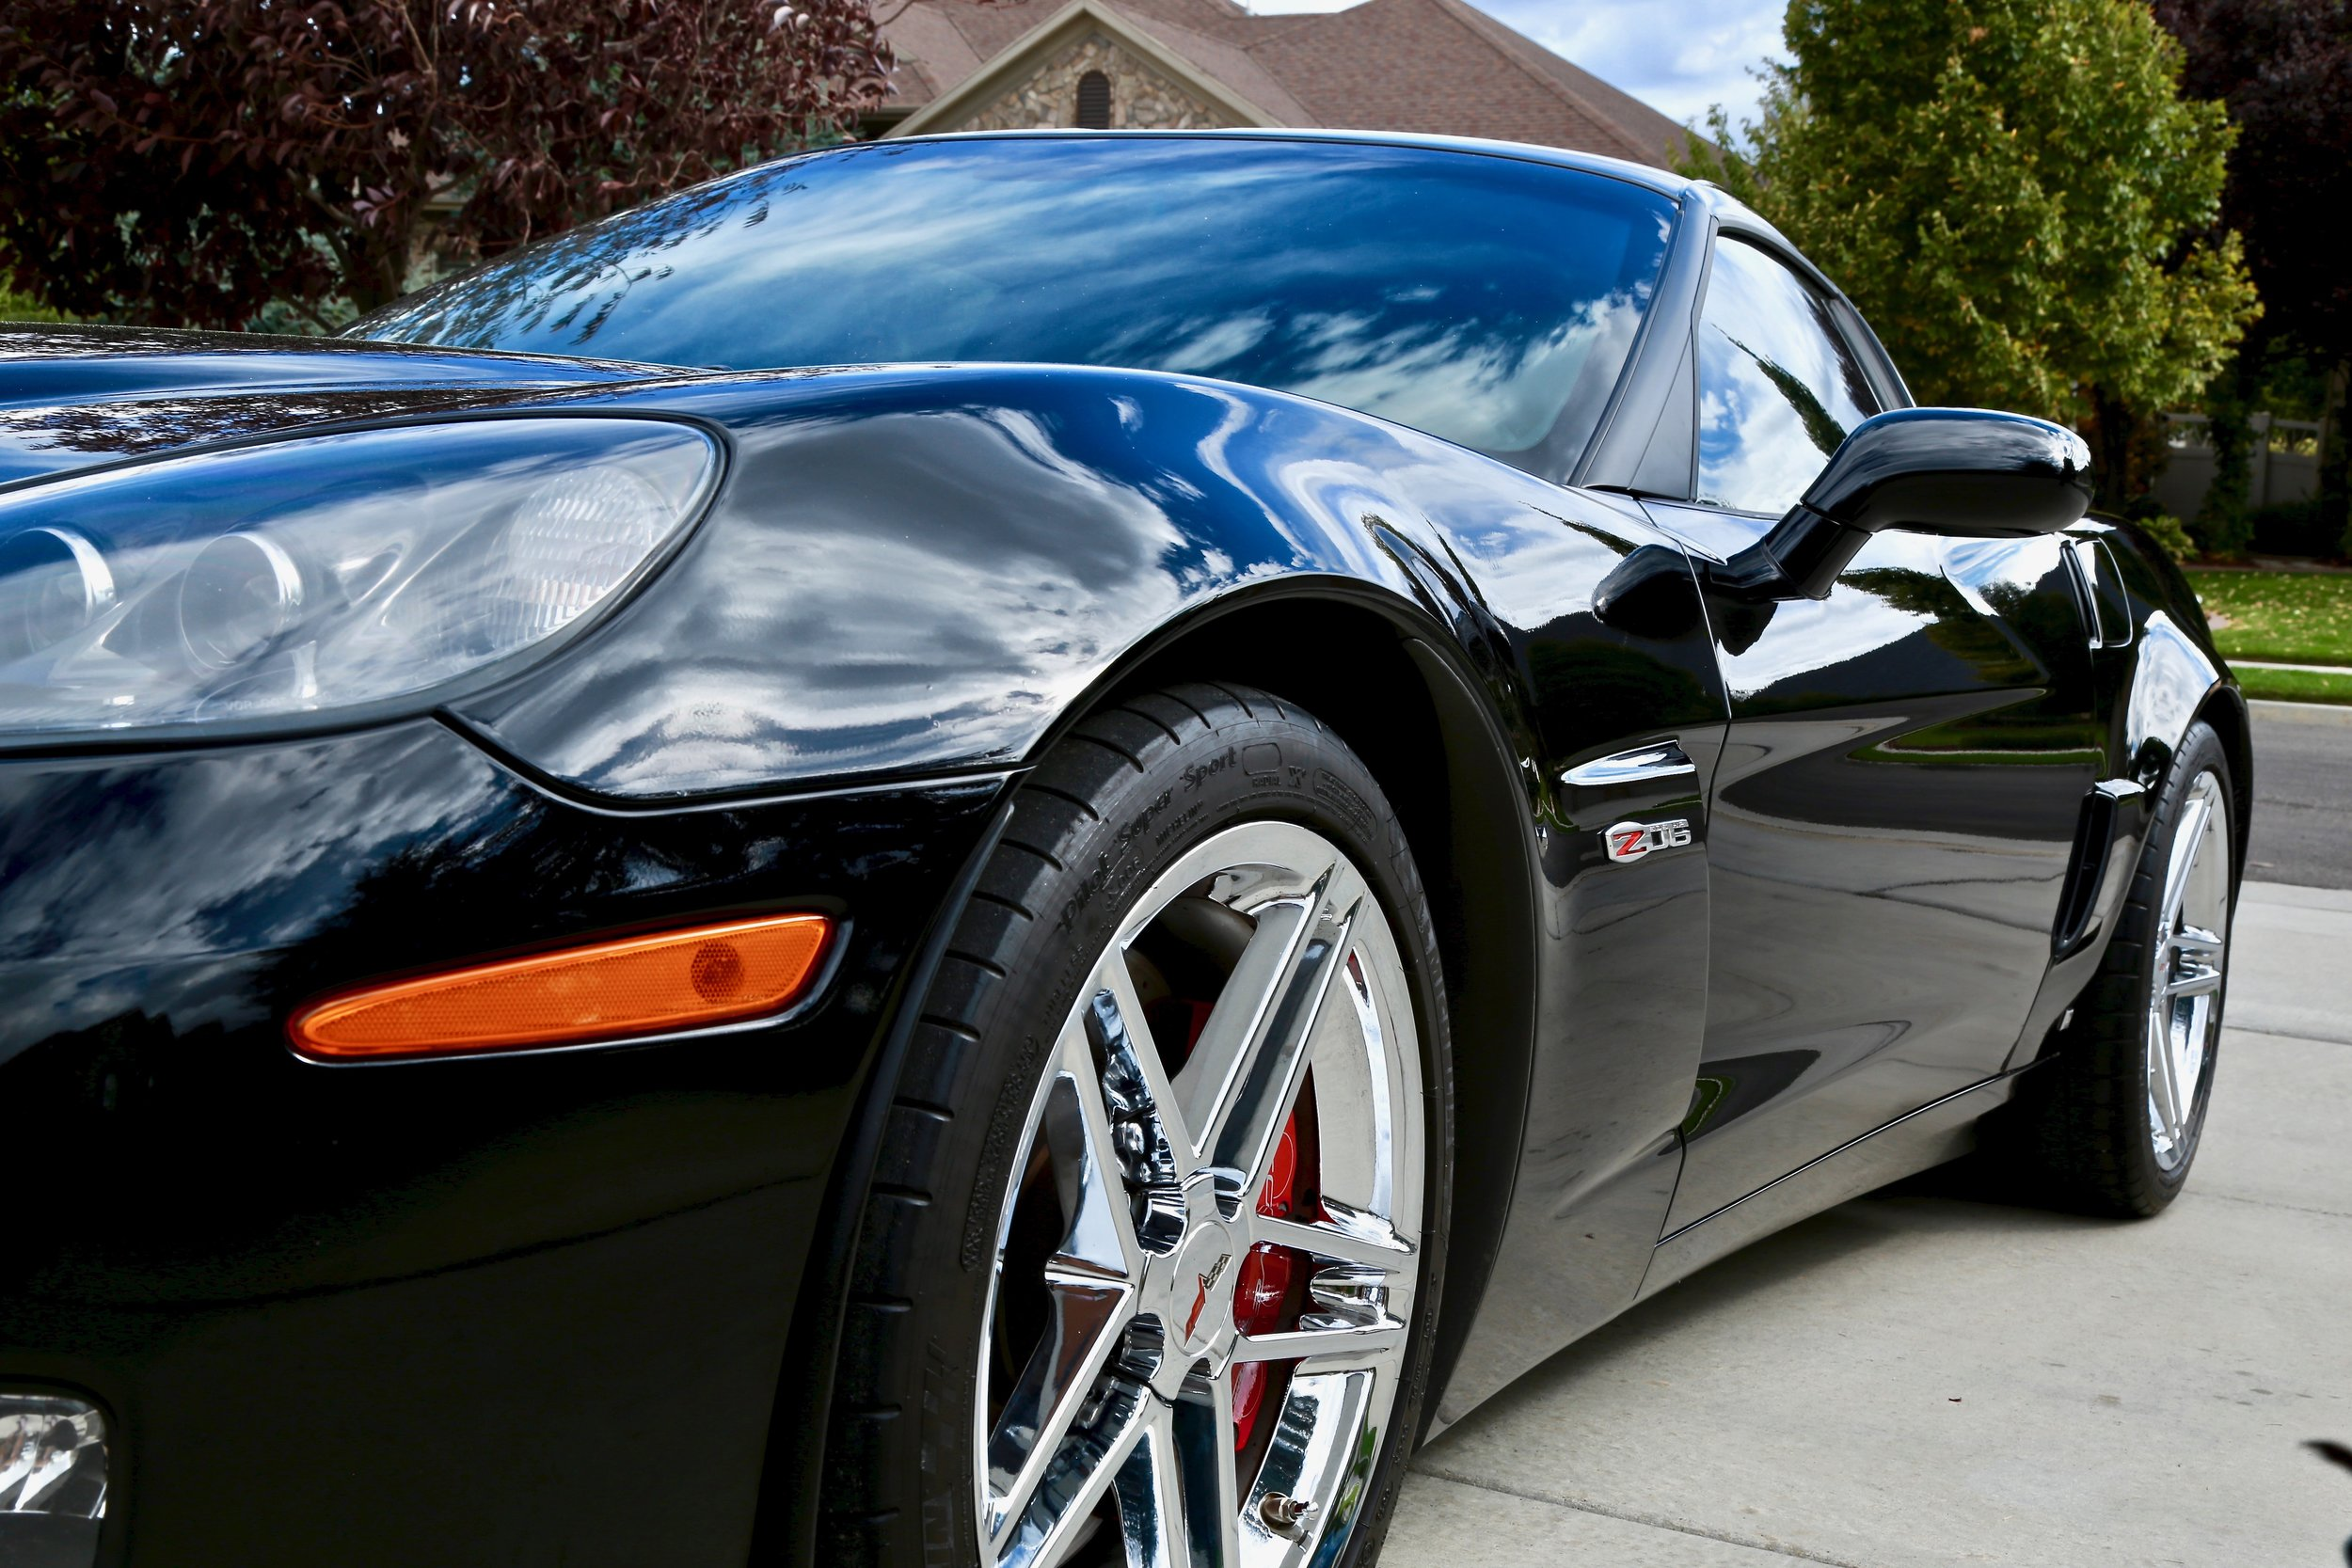 Corvette Z06 - Full paint corretion and coated w/ Dr. Beasleys Nano Resin Pro -